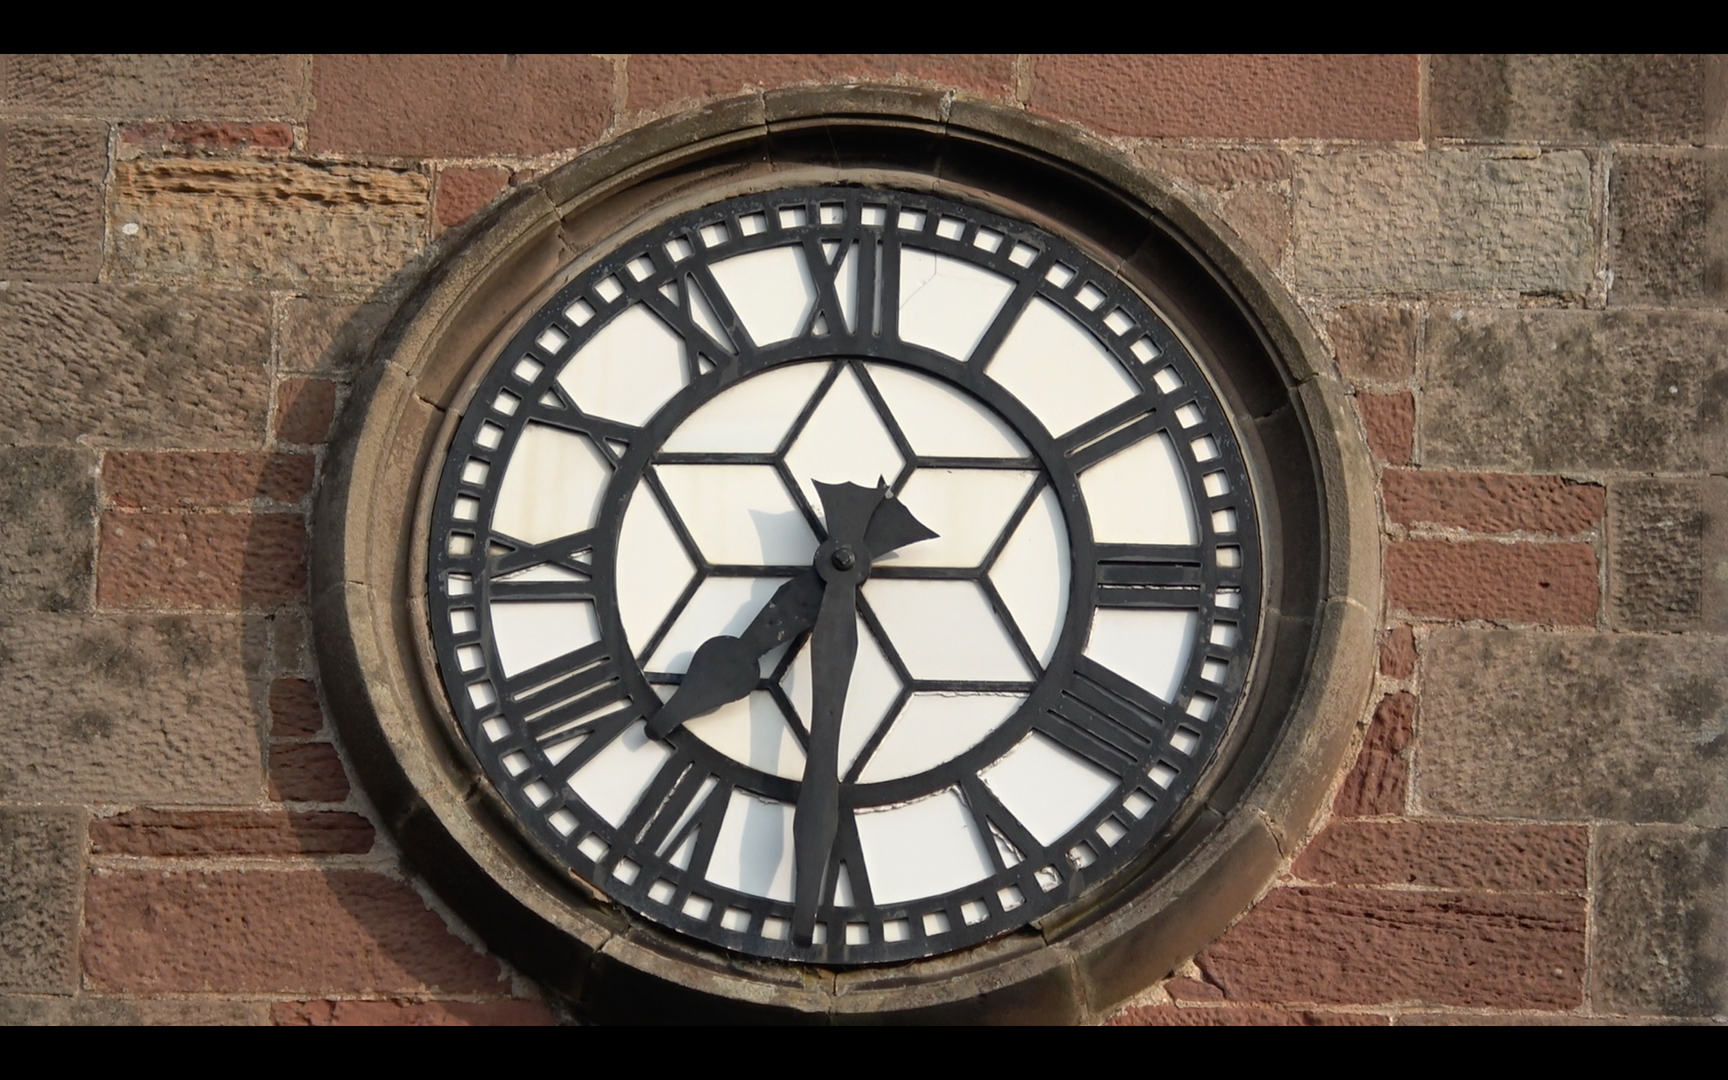 Clockface on Gifford Town Hall